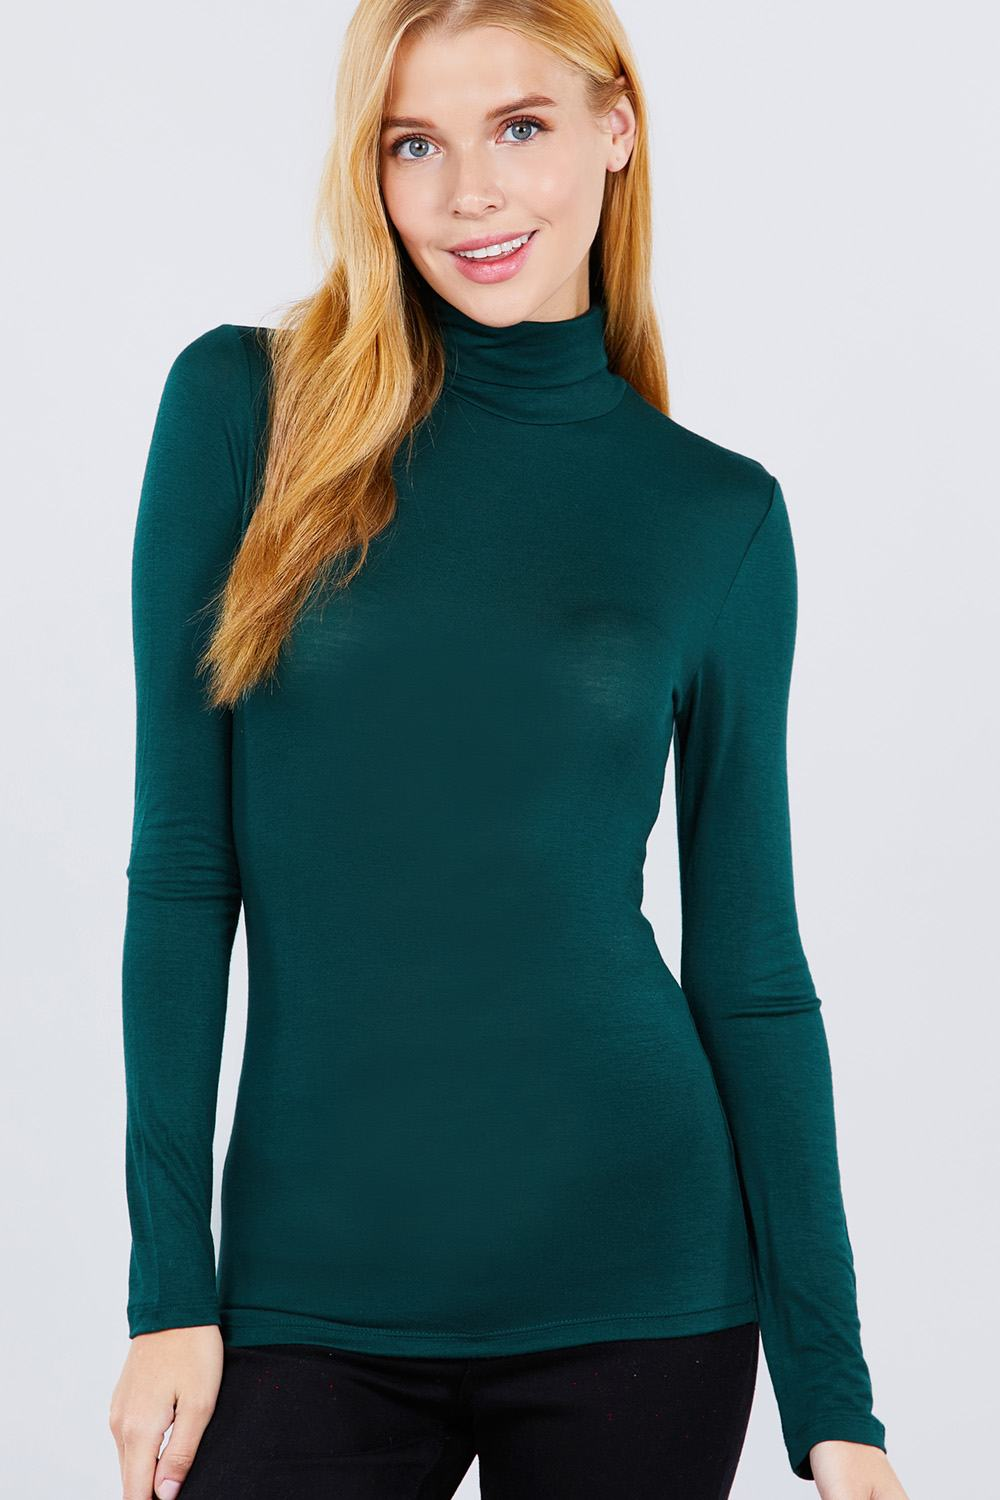 Rayon Jersey Turtle Neck Top